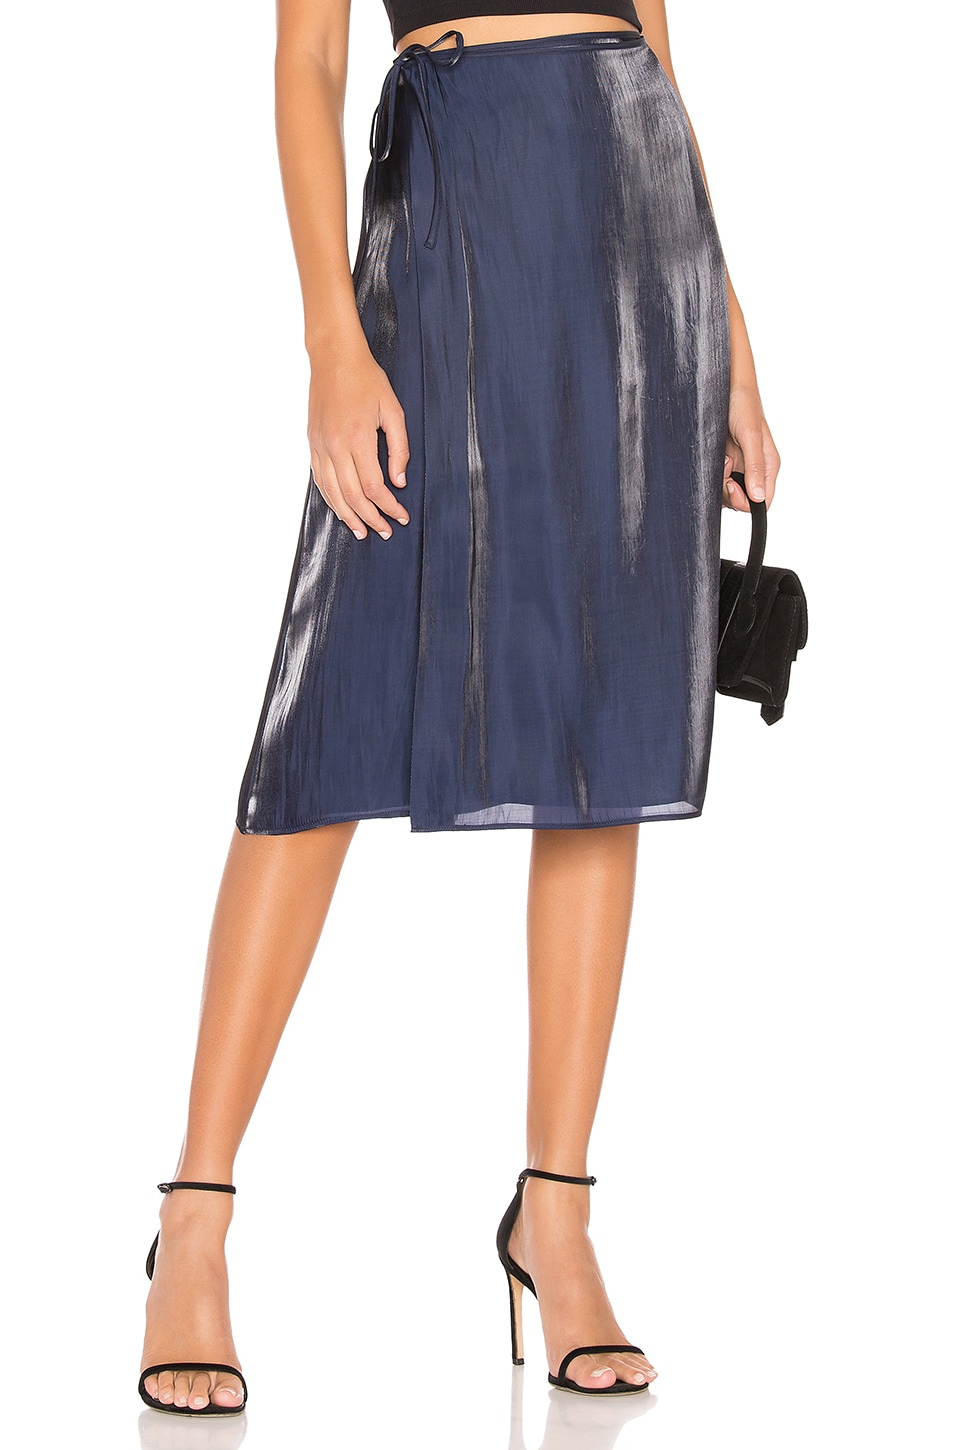 L'Academie The Amora Midi Skirt in Eclipse